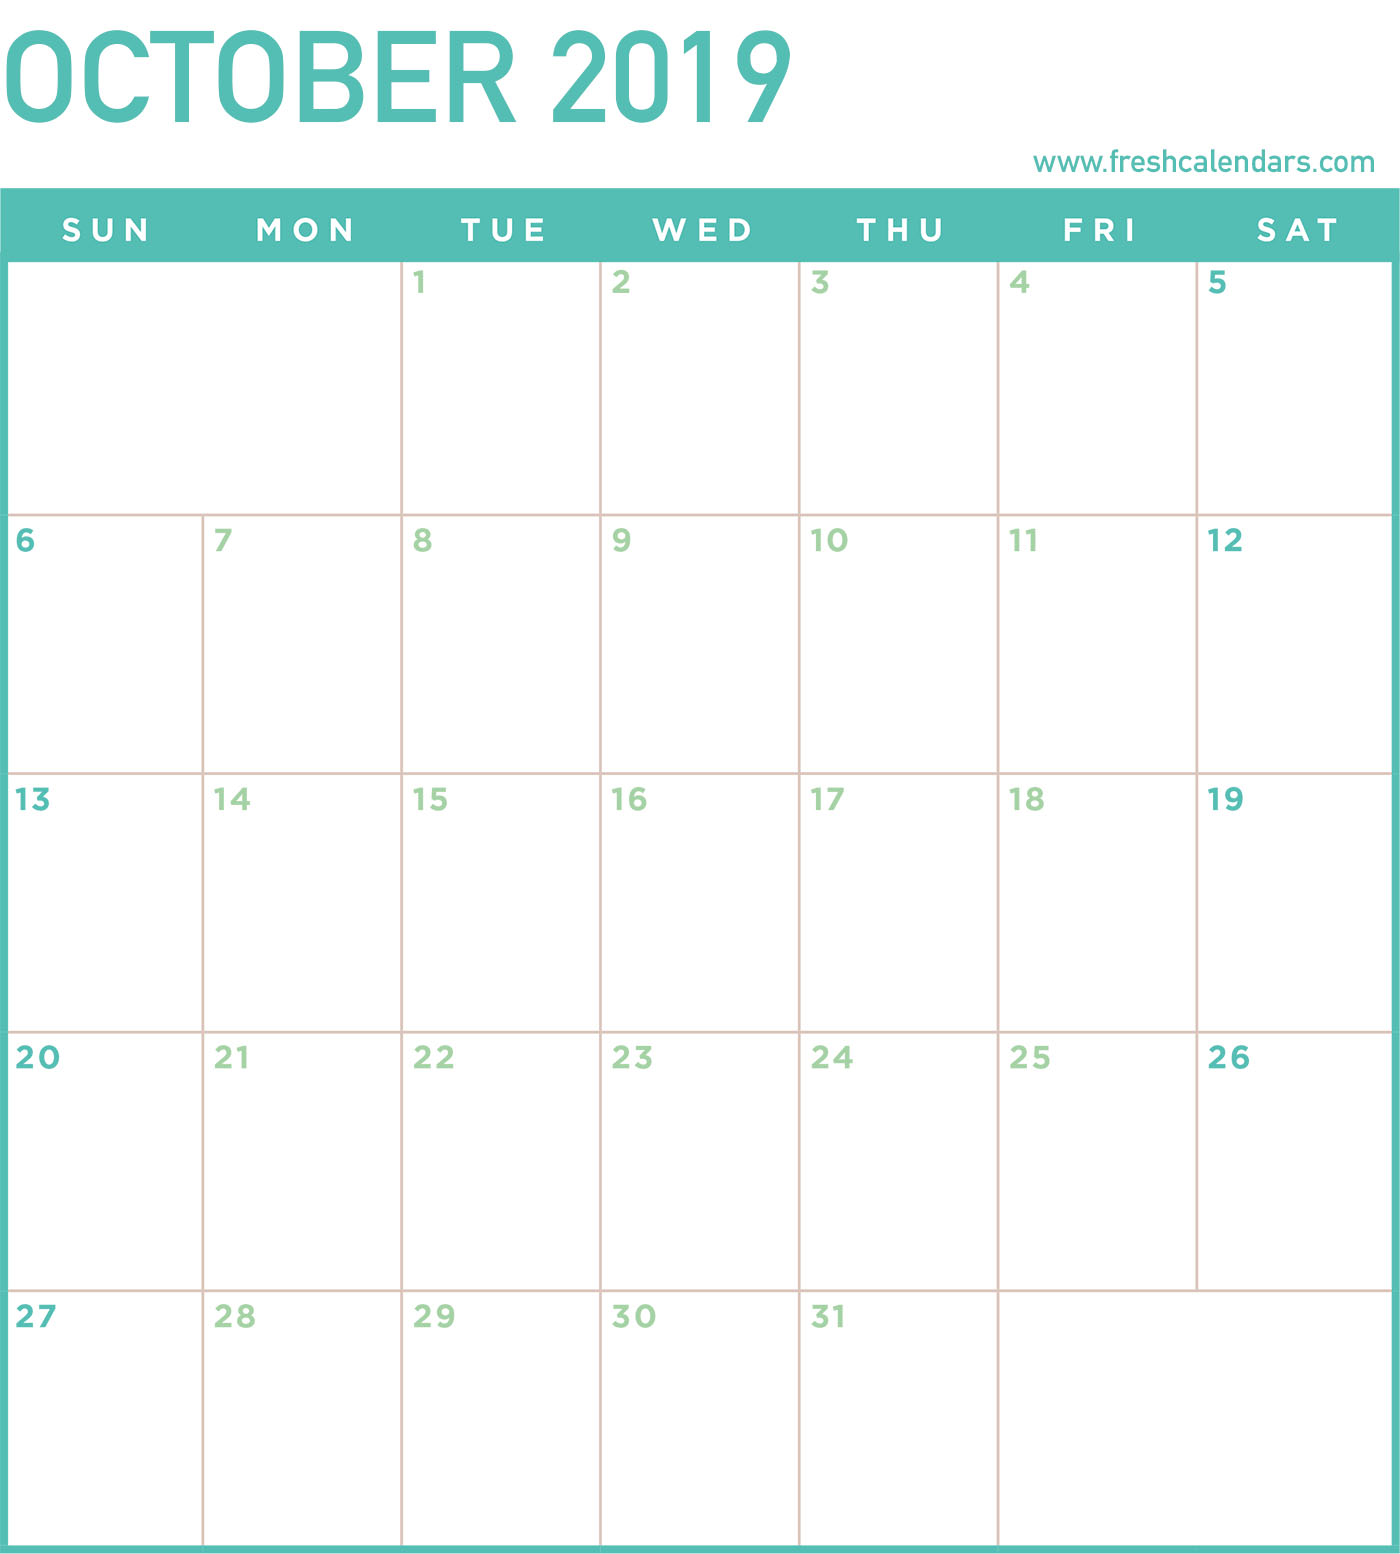 October 2019 Calendar Online PDF Word Excel